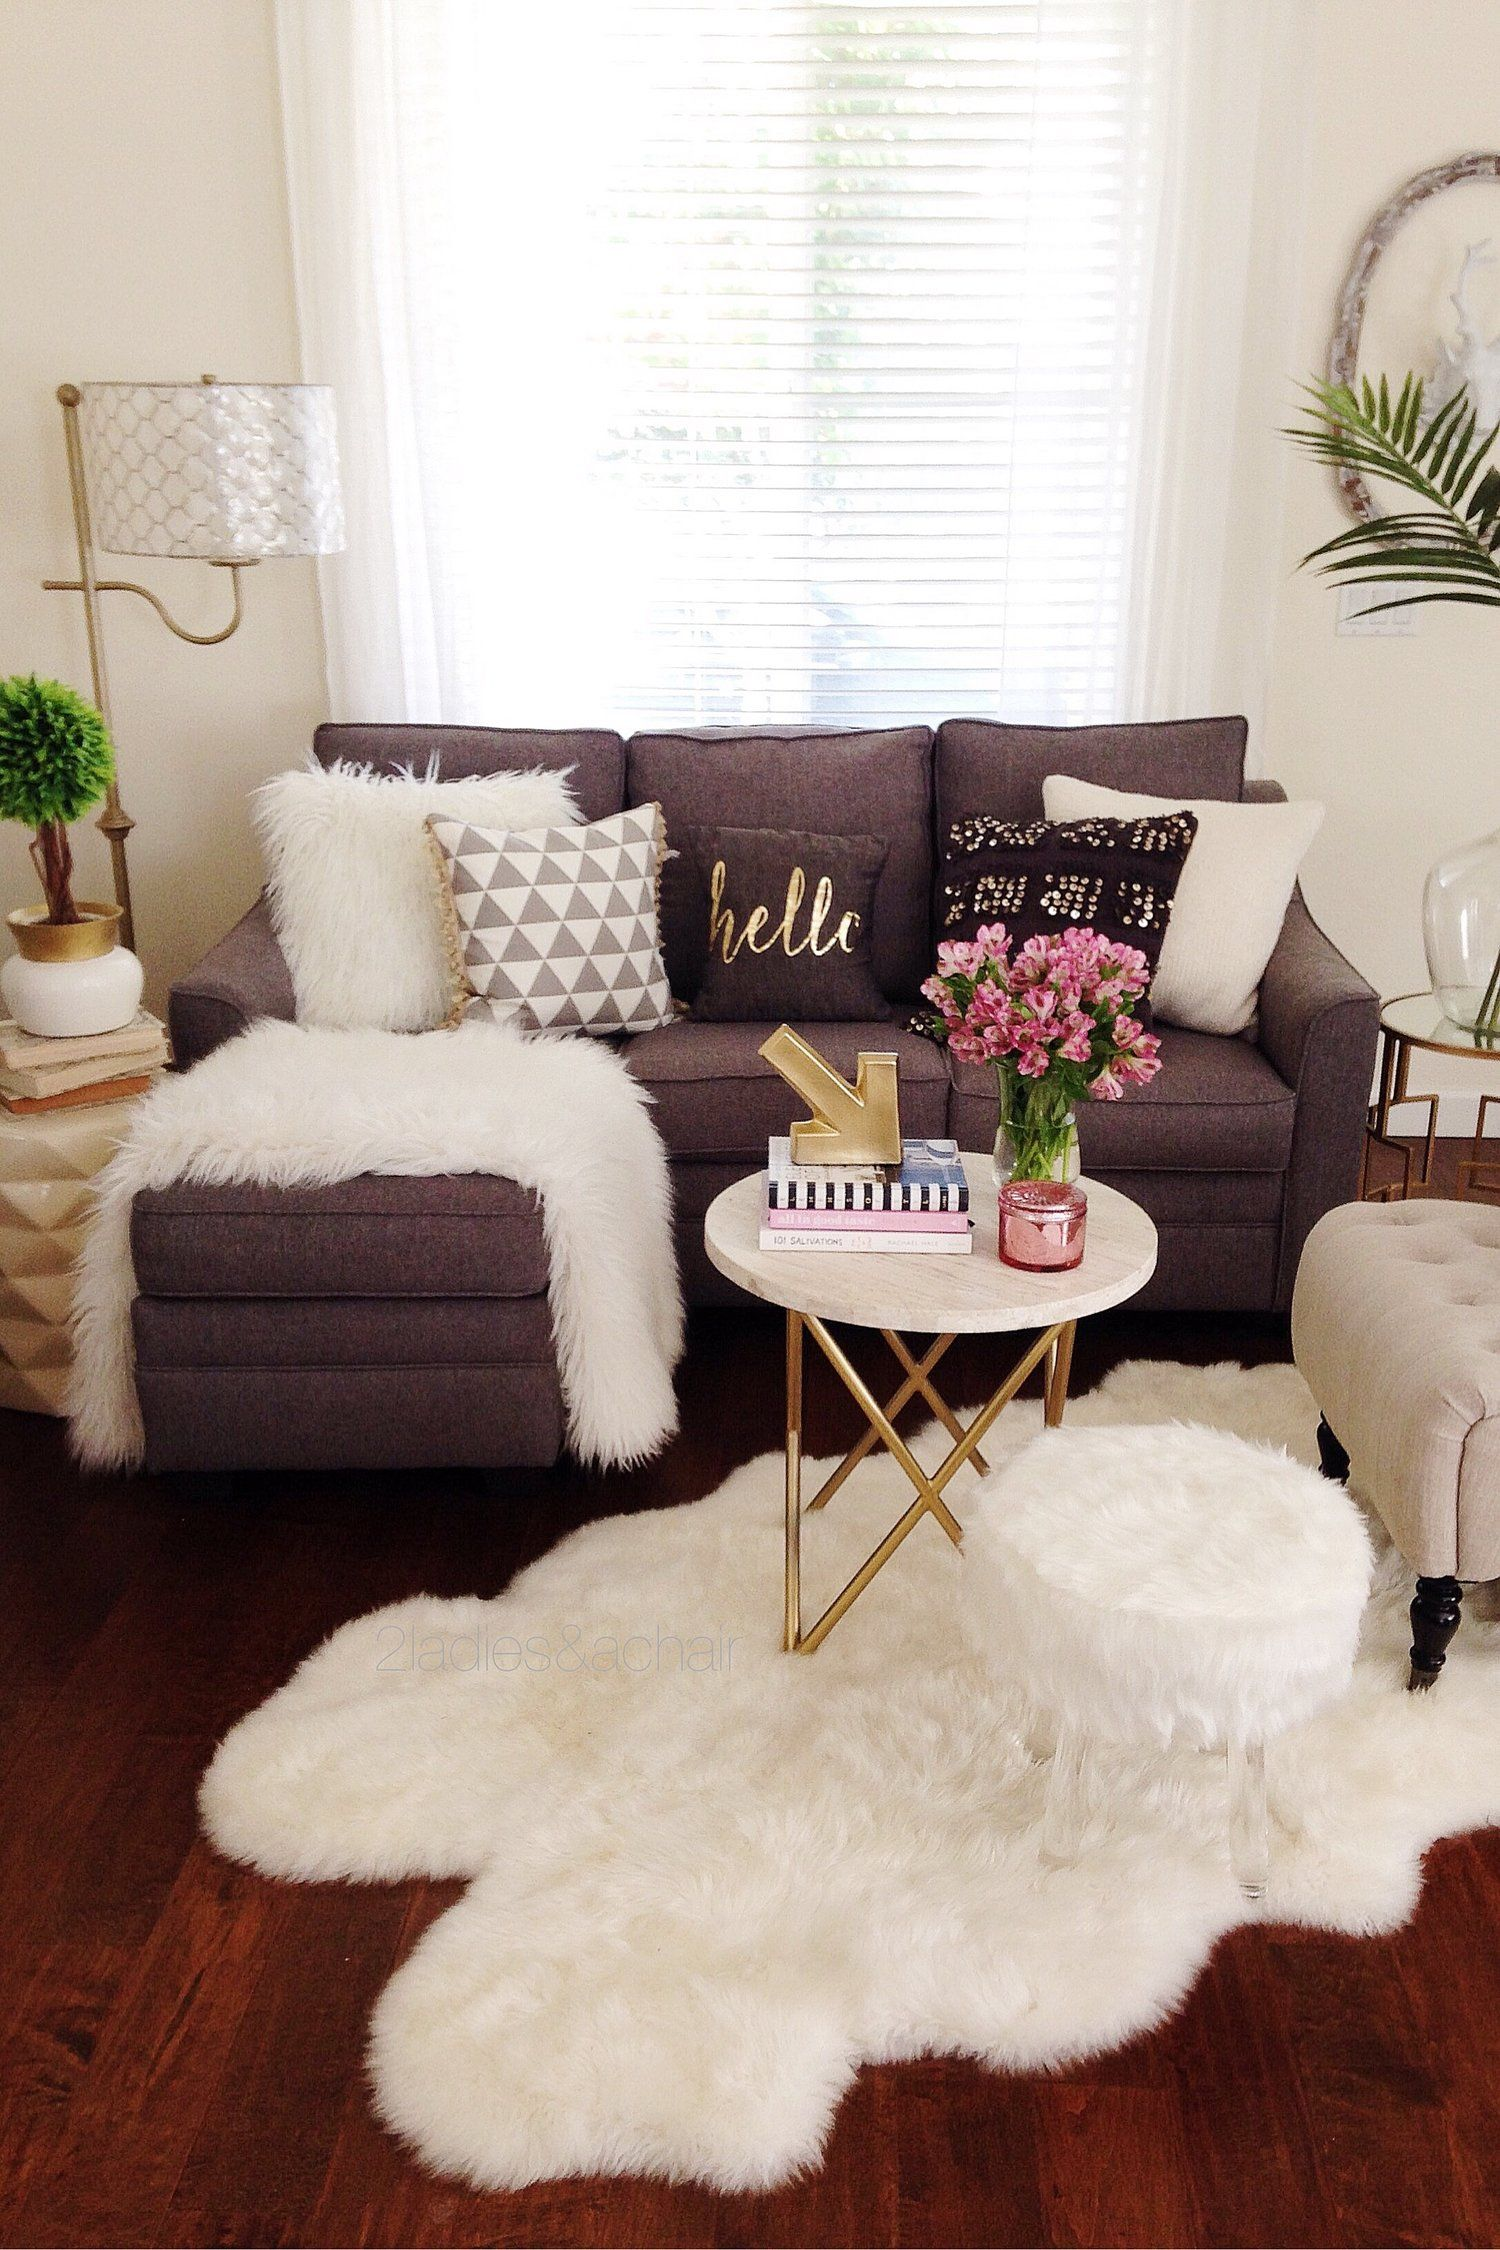 Decorating With Books 2 Ladies A Chair College Apartment Decor College Apartment Living Room Living Room Setup College living room decor